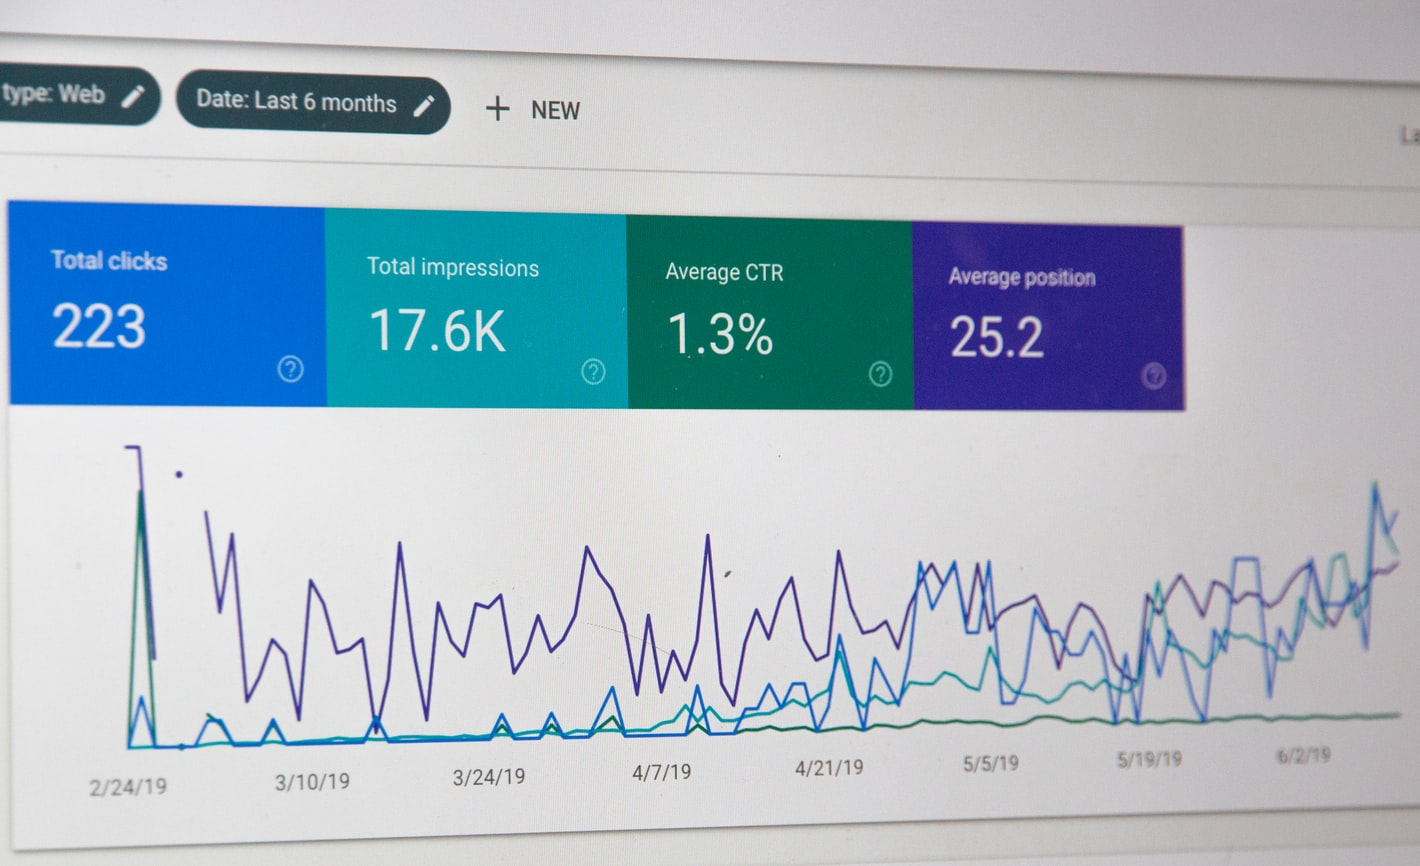 Interface de Google Search Console